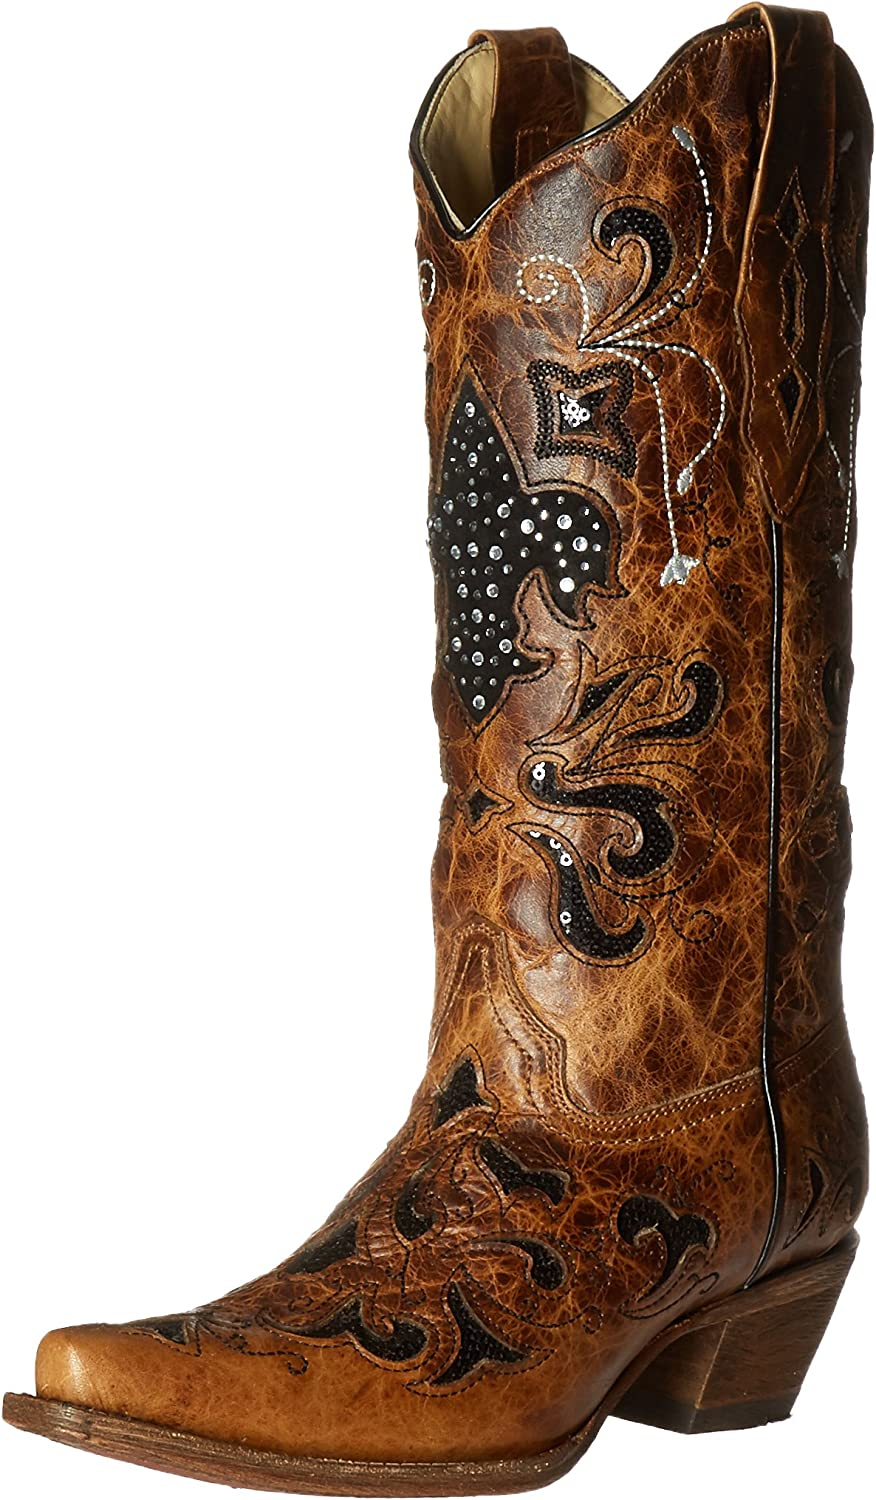 Corral Boots A2840 Antique Saddle Fleur De Lis Square Toe Boots